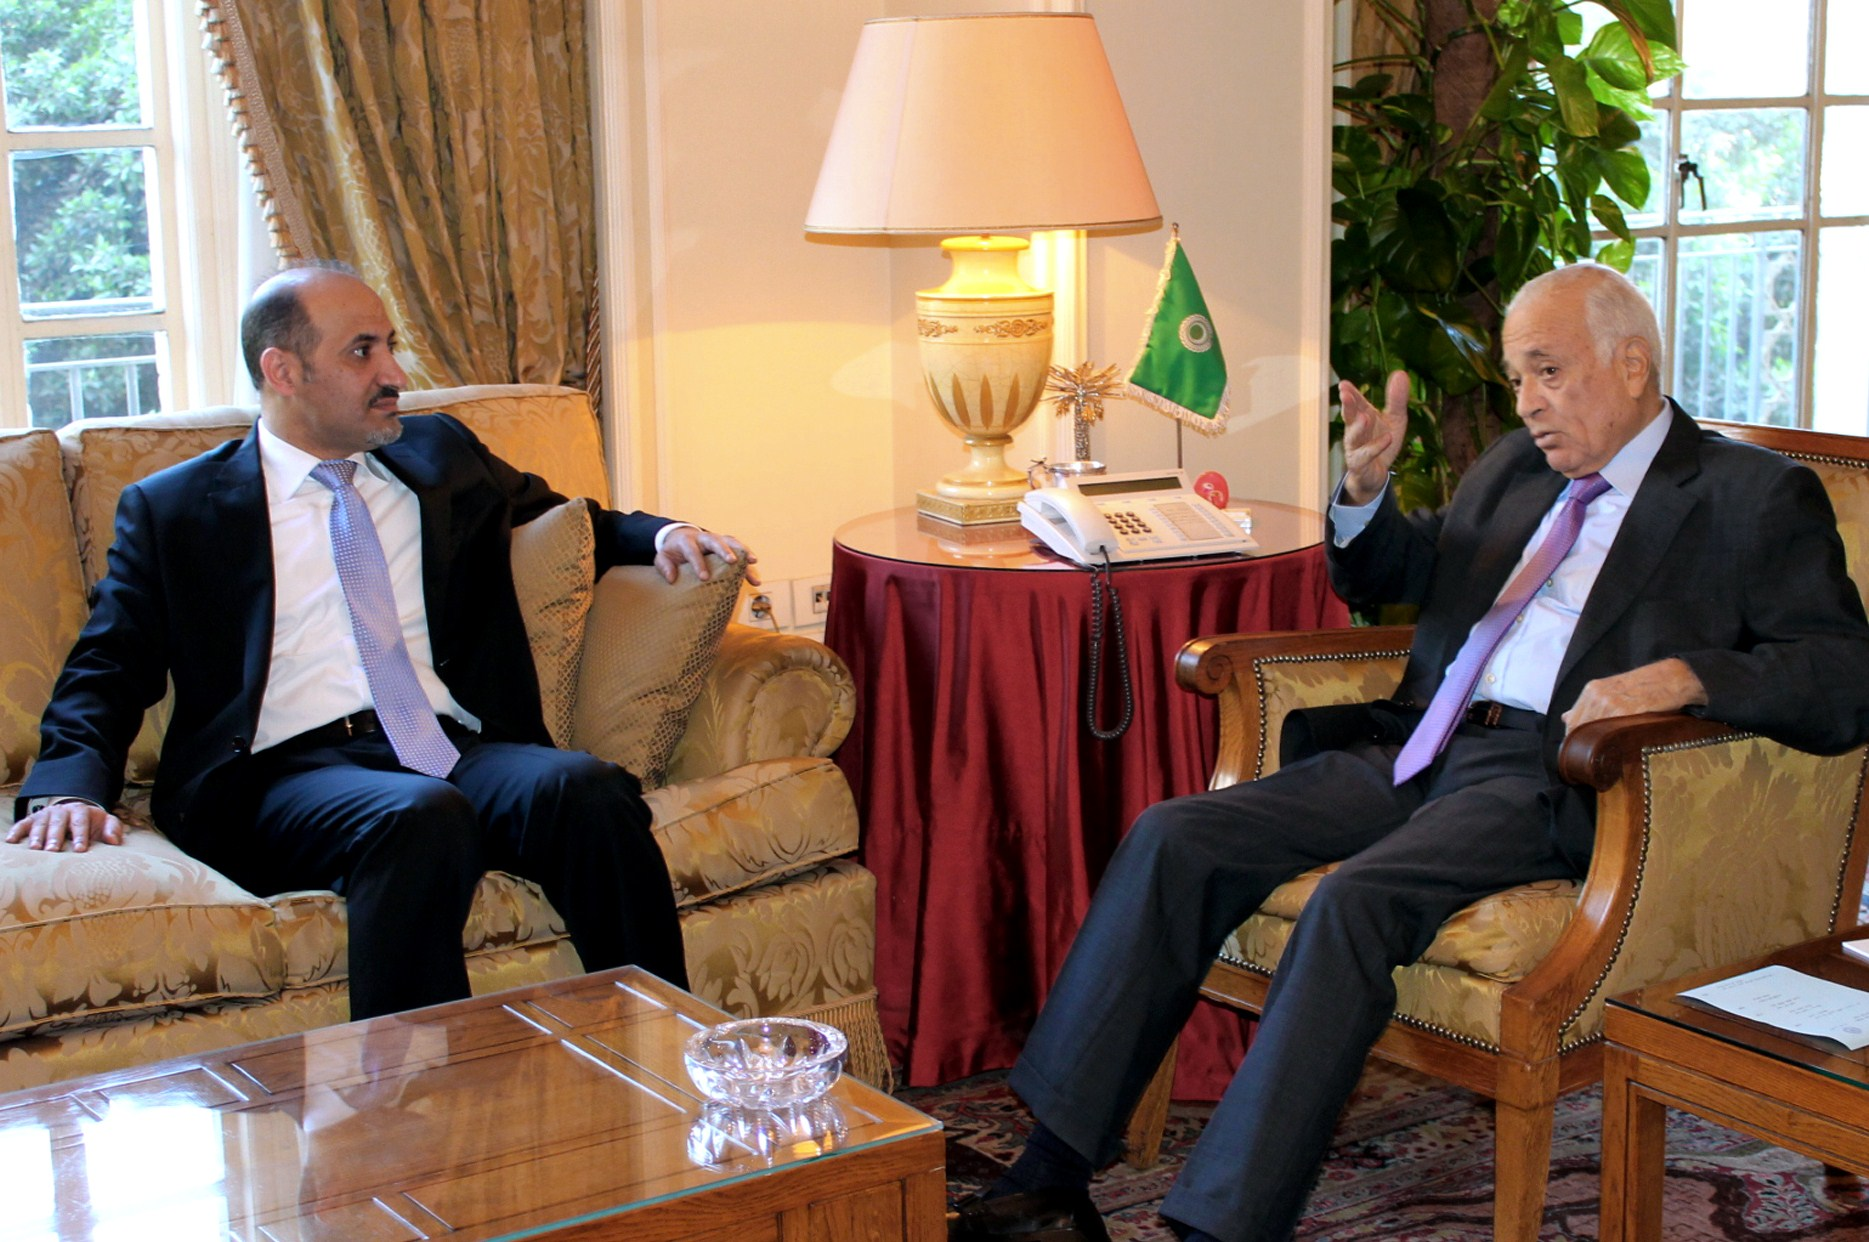 Arab League general secretary Nabil al-Arabi (R) meets with the Syrian opposition chief Ahmed Jarba in Cairo on November 26, 2013.  (AFP PHOTO/STR)